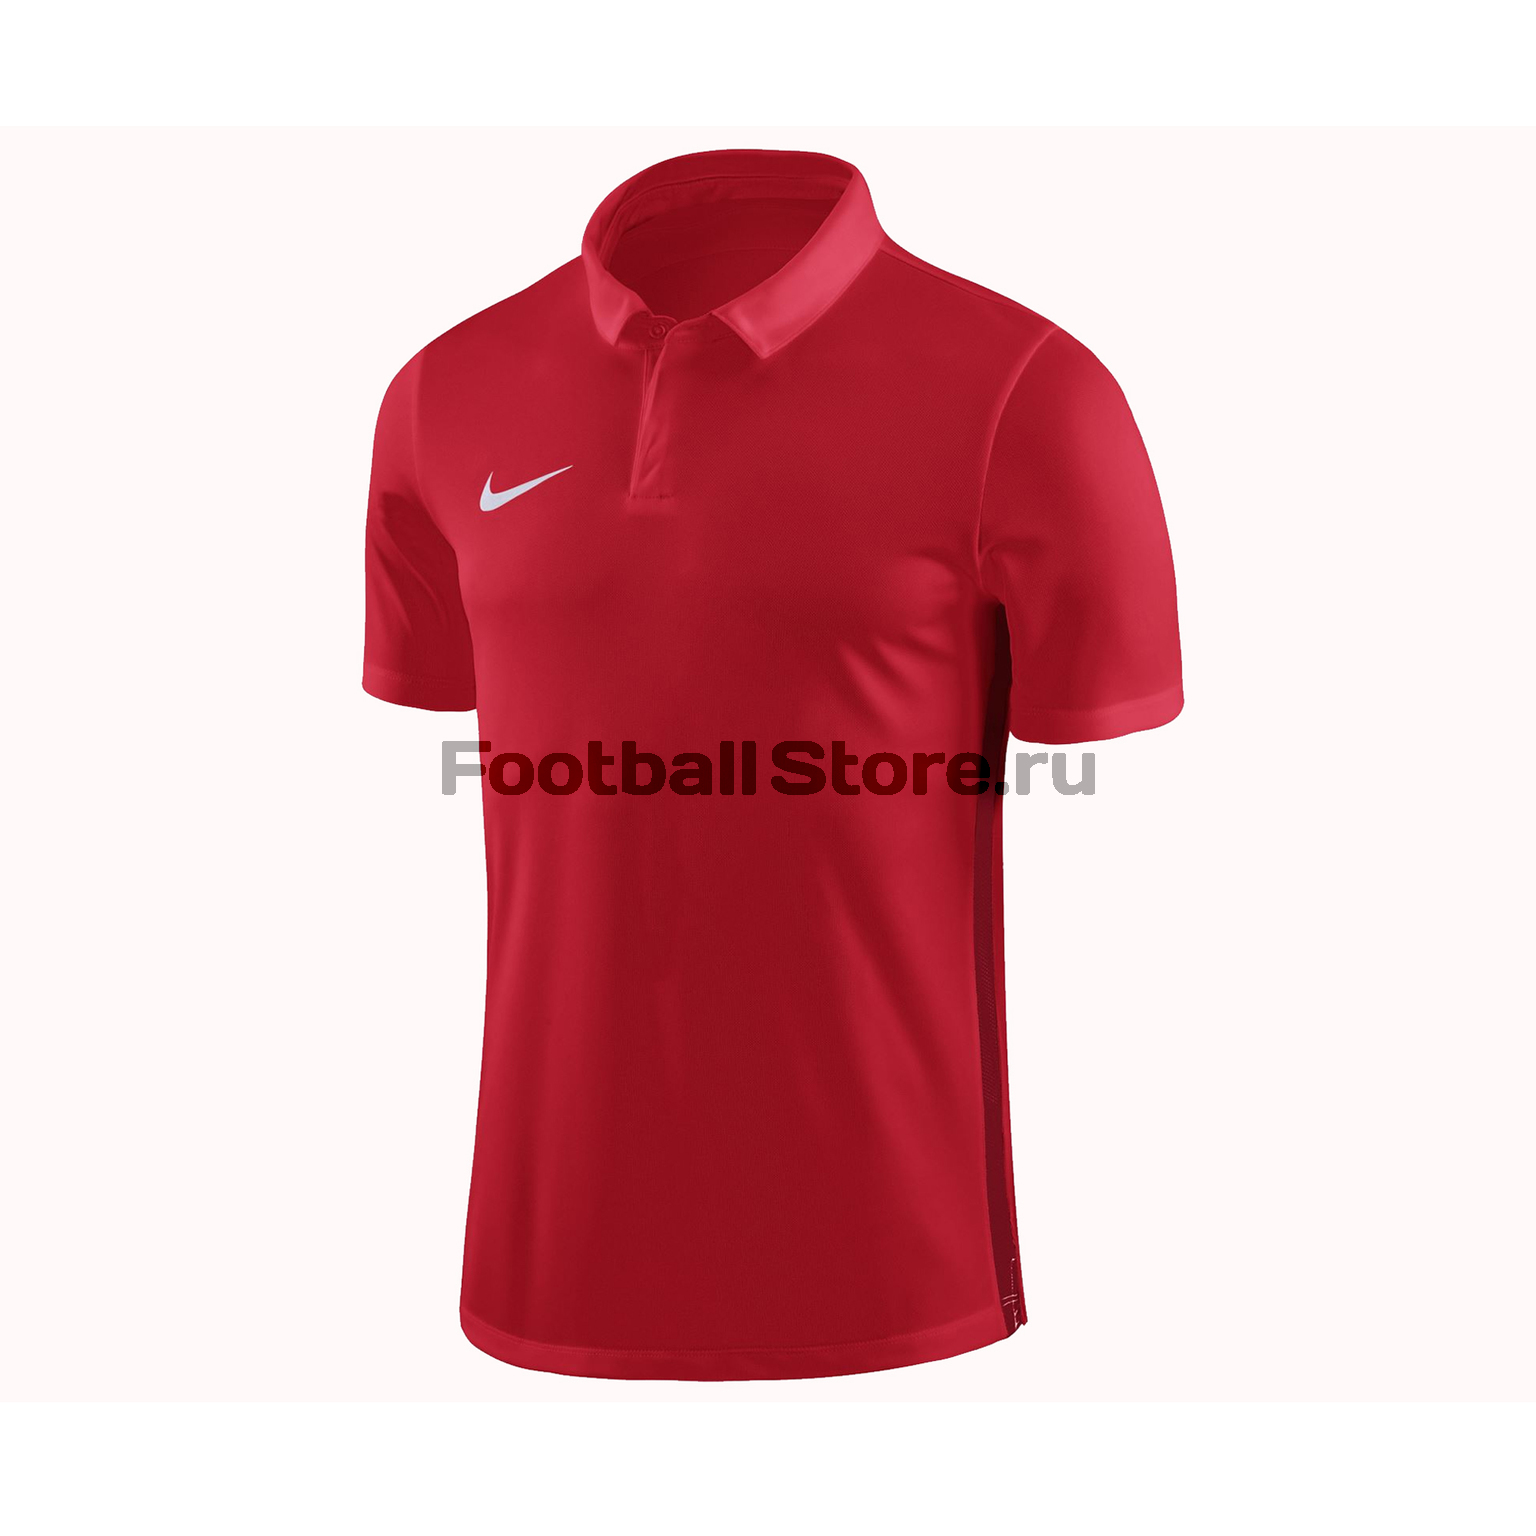 Поло Nike YTH Academy18 Dry Polo 899991-657 платье gold chic chili gold chic chili mp002xw1hkl0